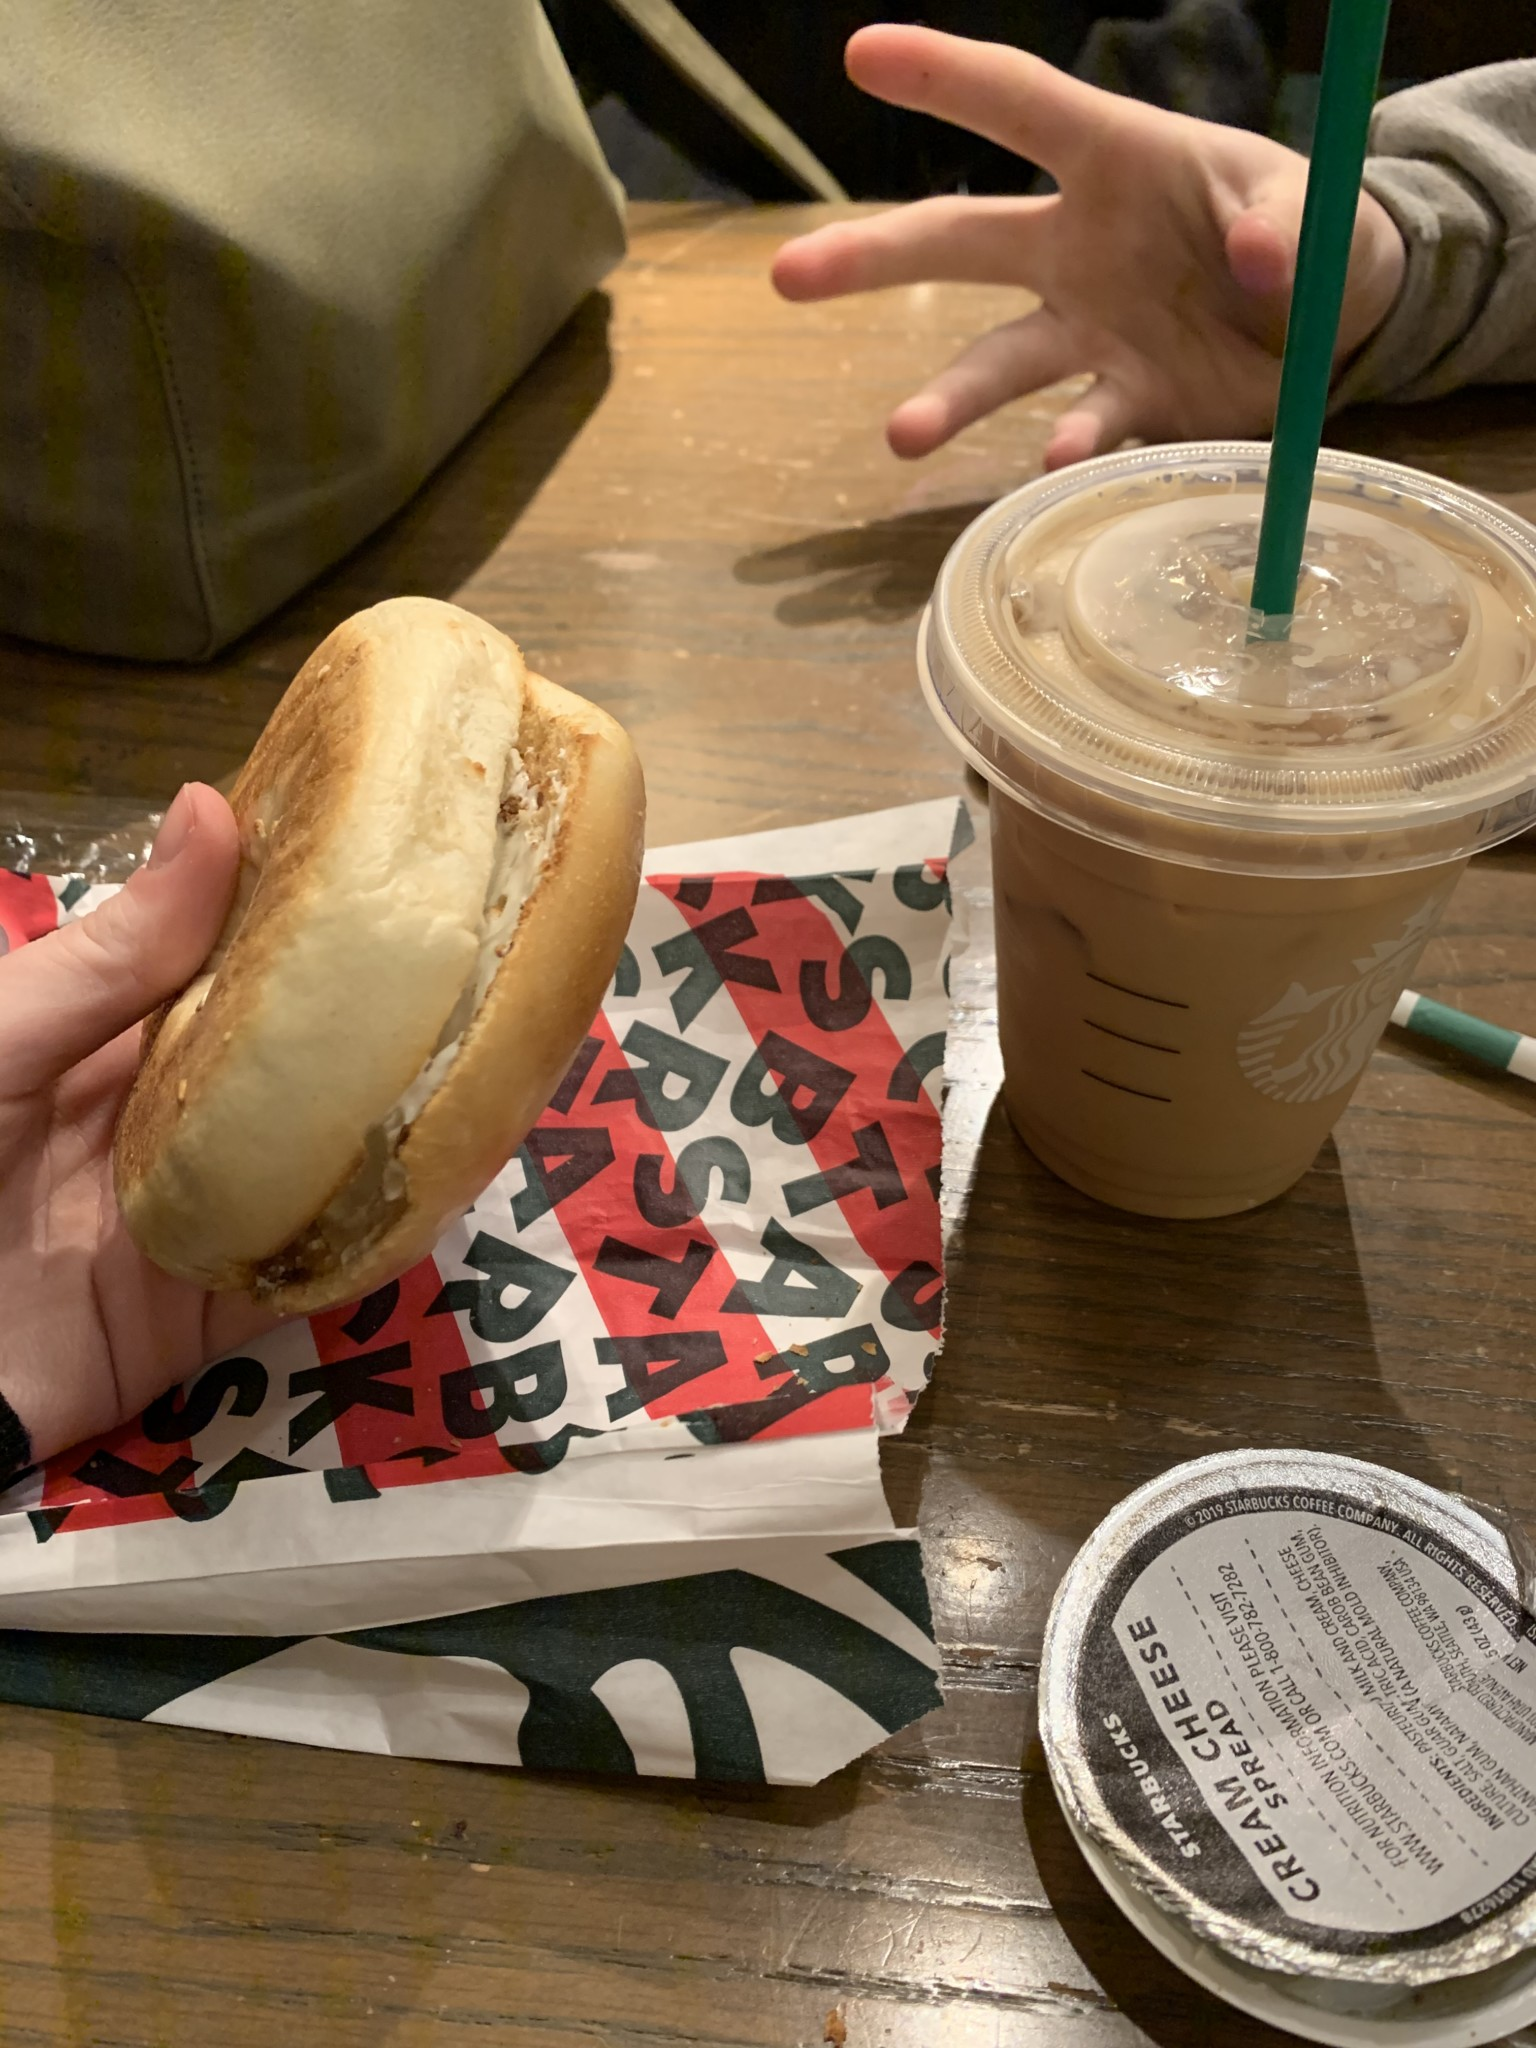 Bagel with cream cheese and iced coffee from Starbucks